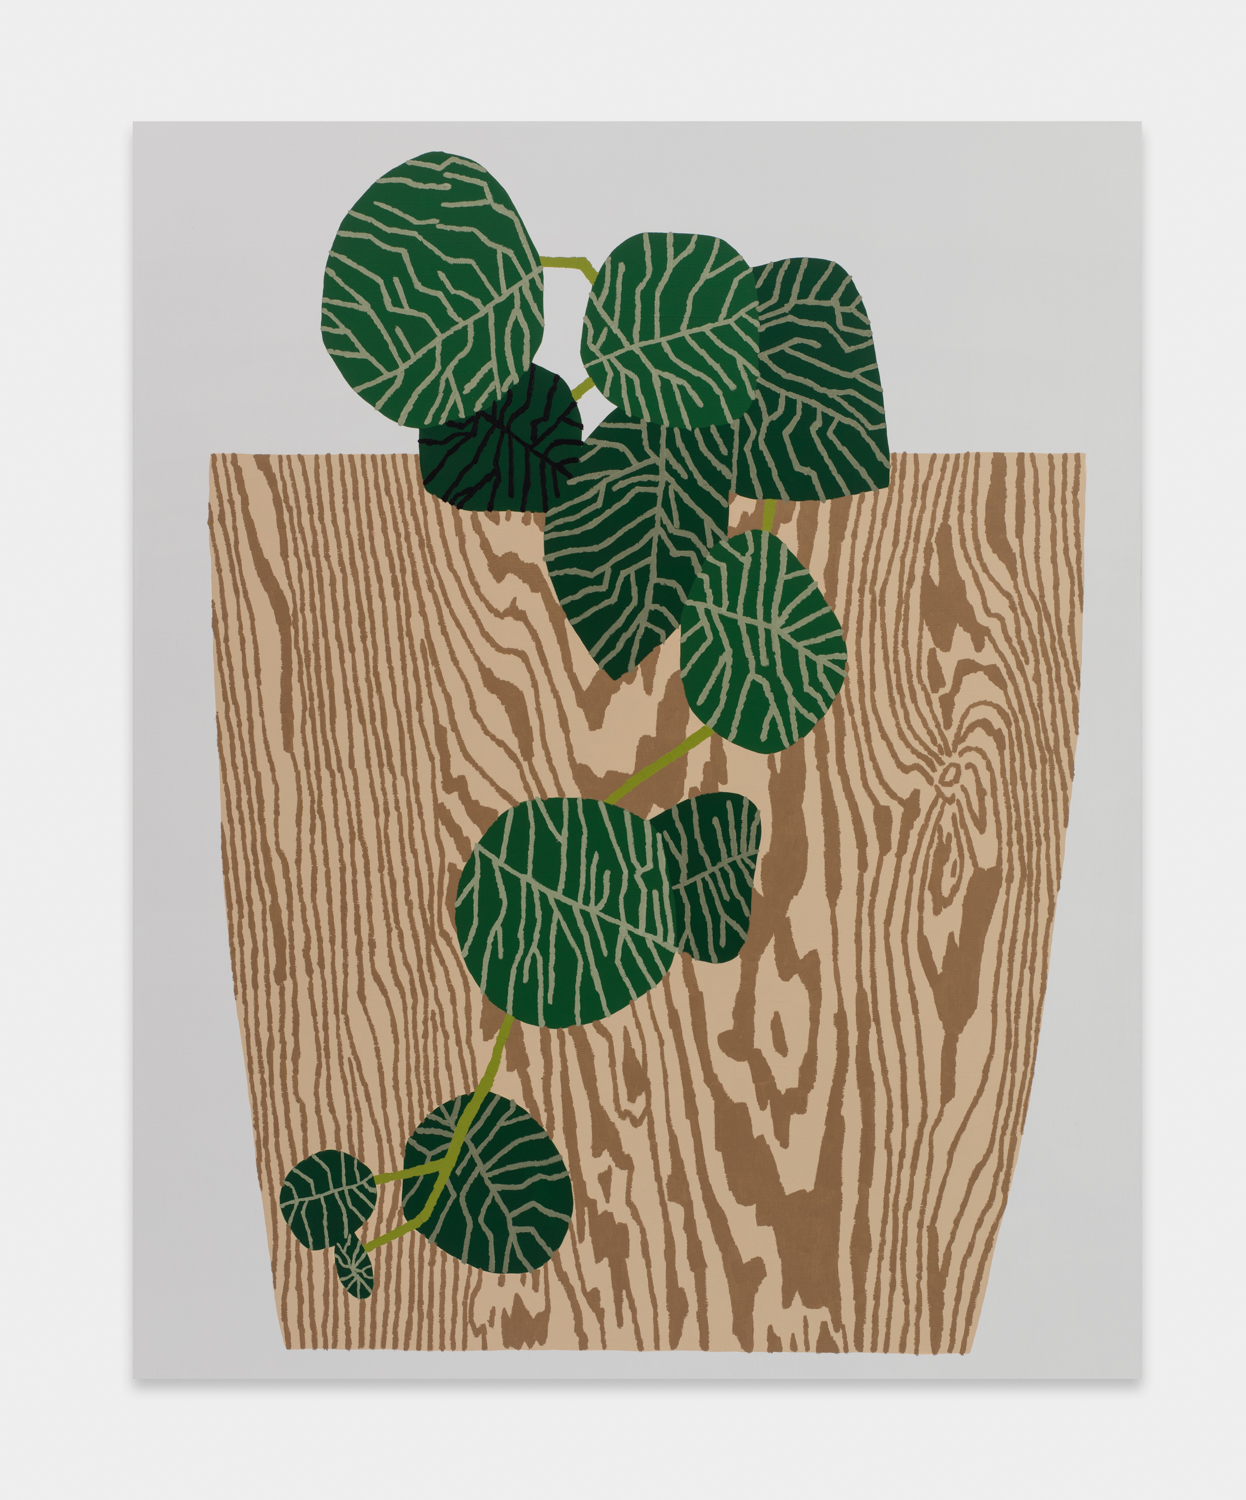 Jonas Wood  Wood Grain Pot with Hanging Plant  2015 Oil and acrylic on linen 40h x 32w in JW210